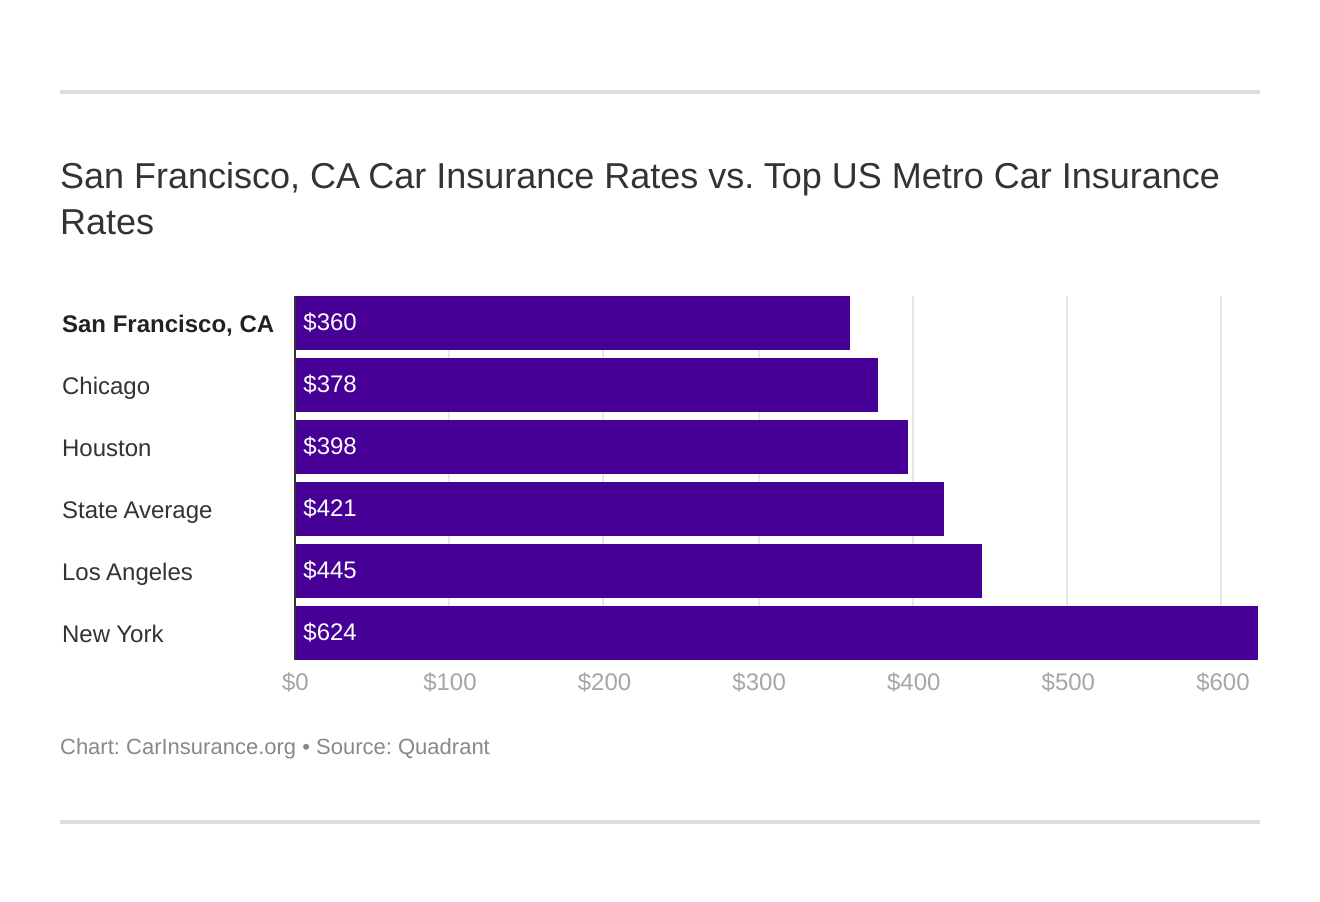 San Francisco, CA Car Insurance Rates vs. Top US Metro Car Insurance Rates